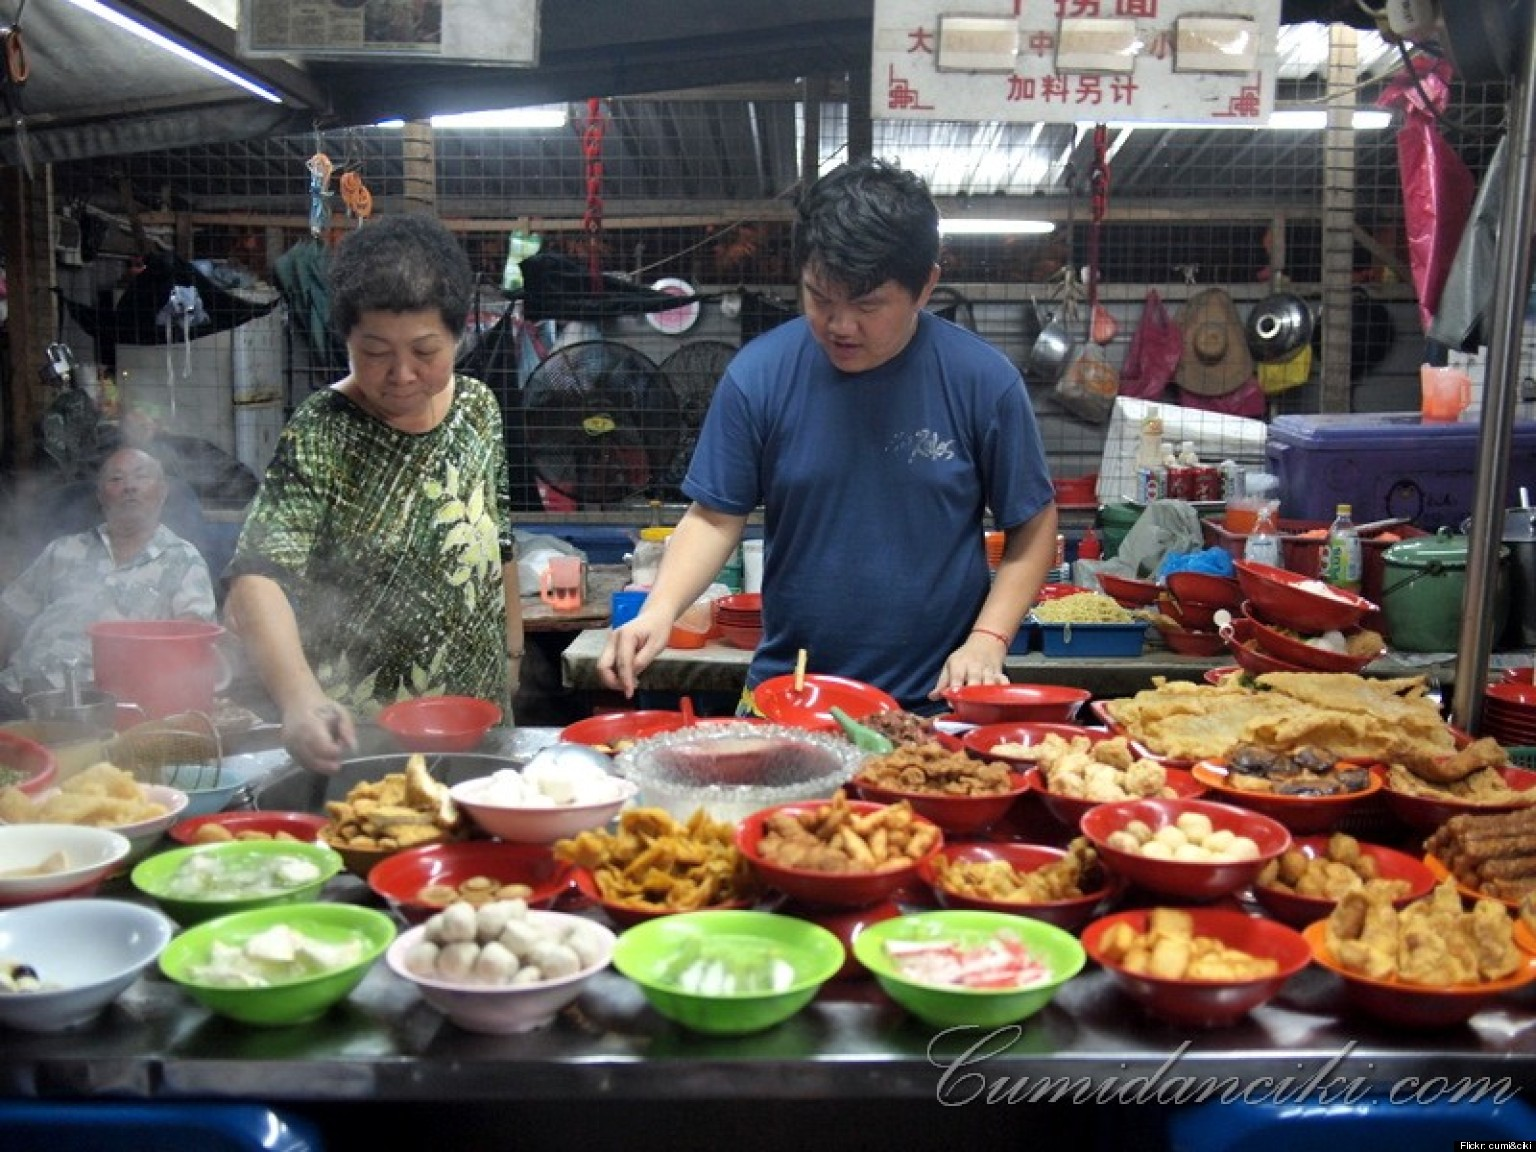 Singapore 39 s most memorable street foods huffpost for Australian cuisine singapore